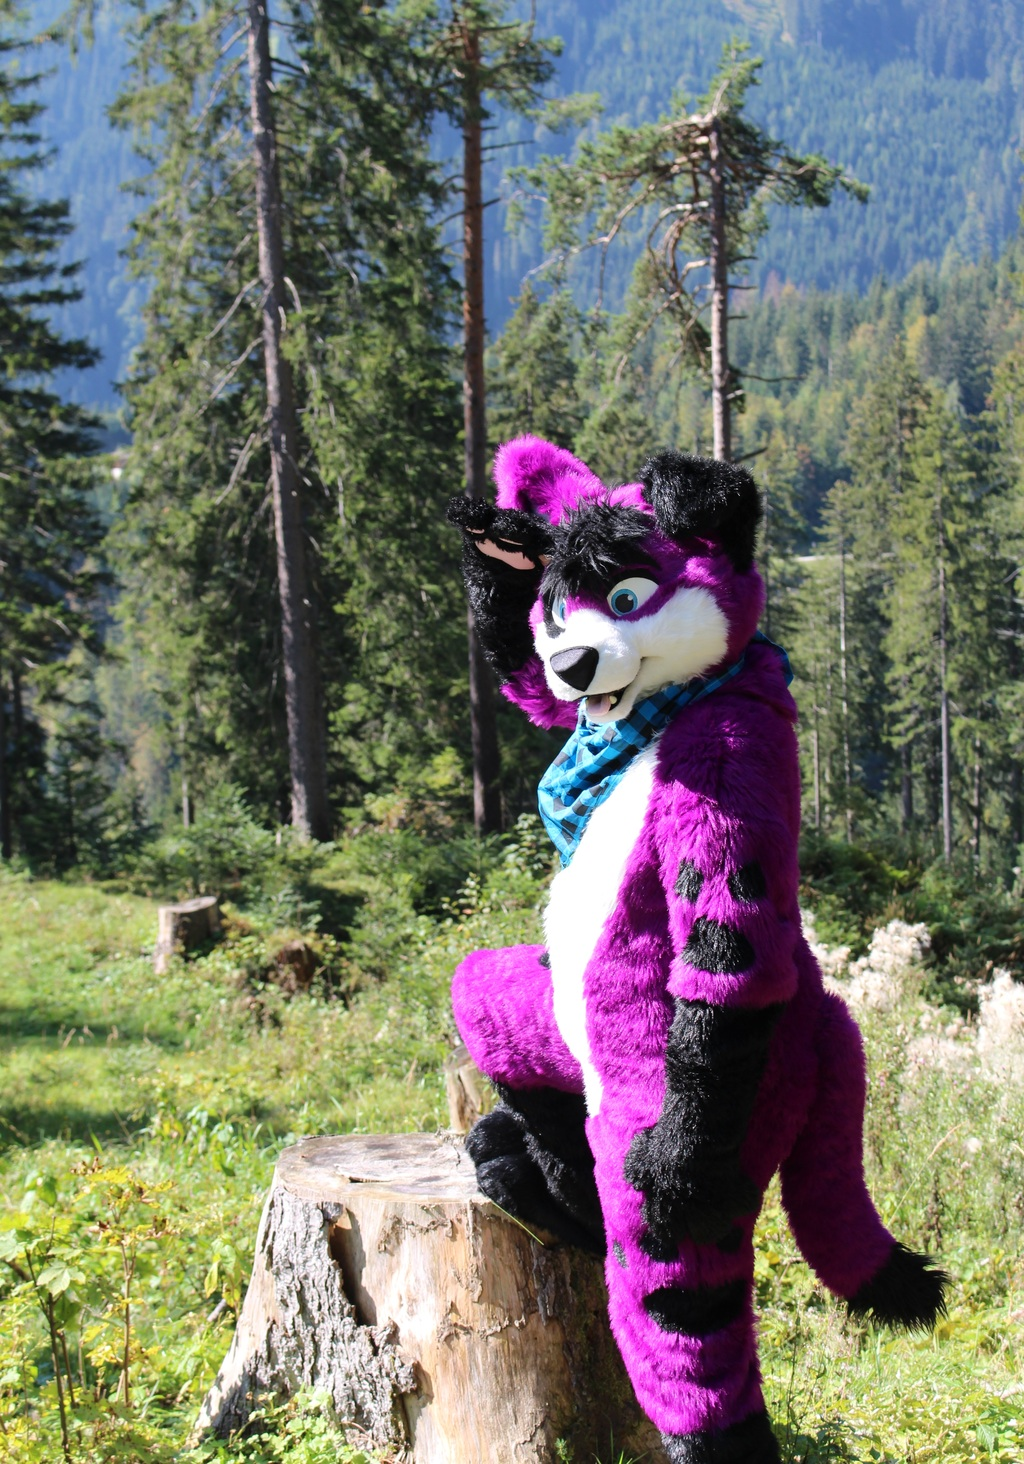 Look out for Fursuit Friday